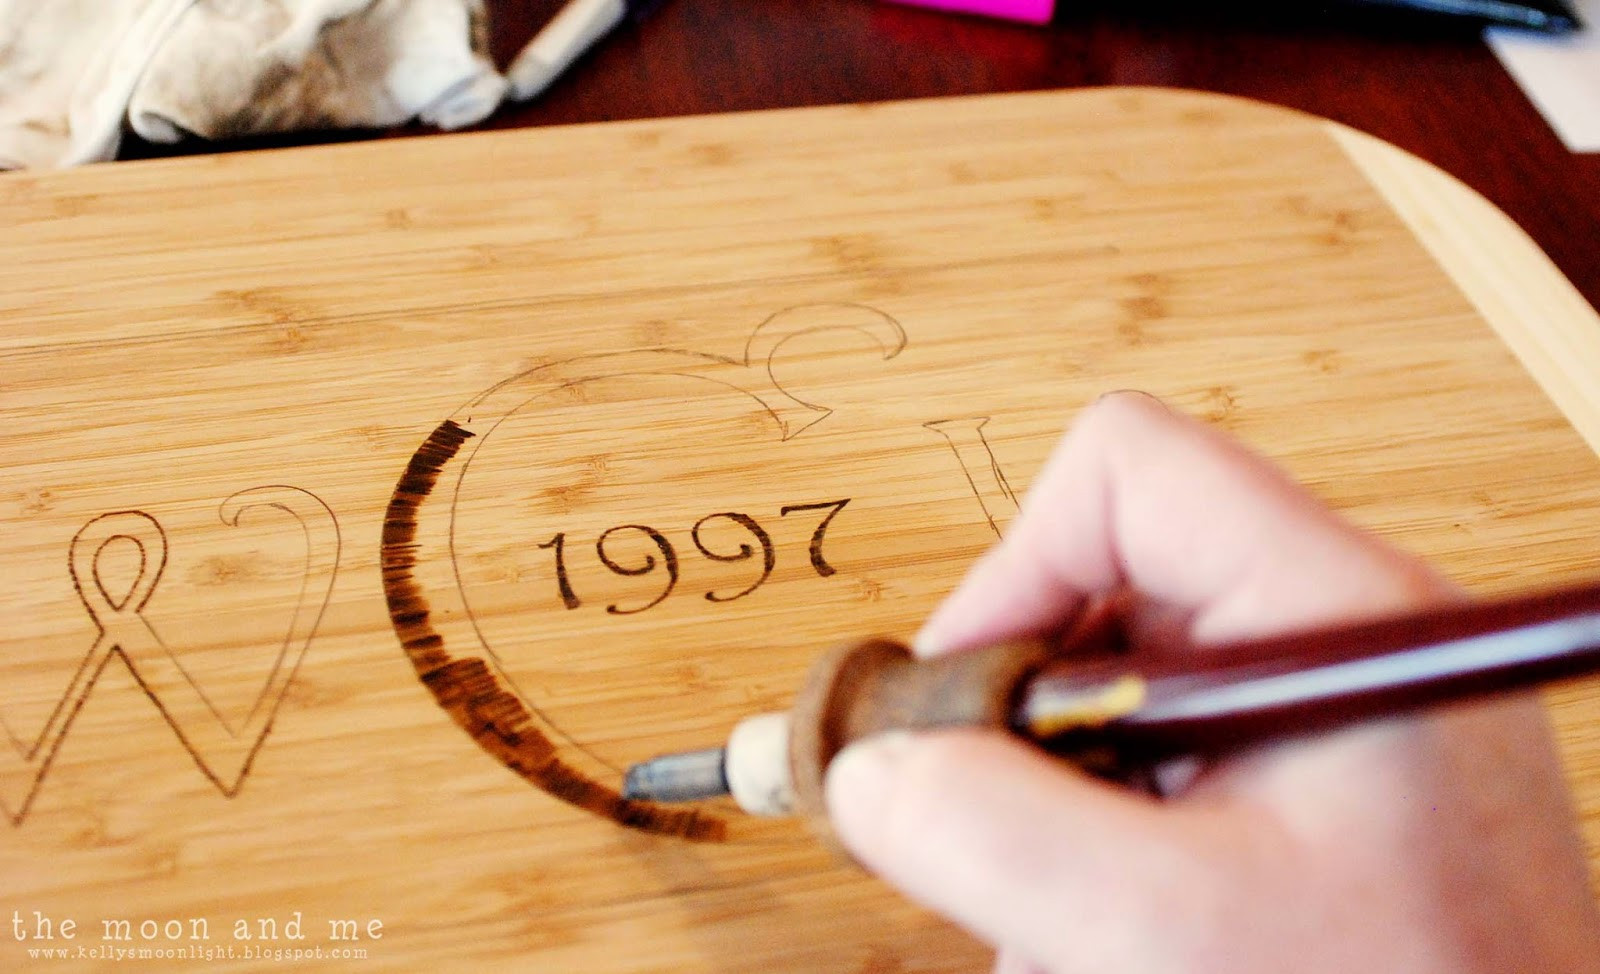 Best ideas about DIY Wood Burning . Save or Pin The Moon and Me DIY Personalized Cutting Board Now.